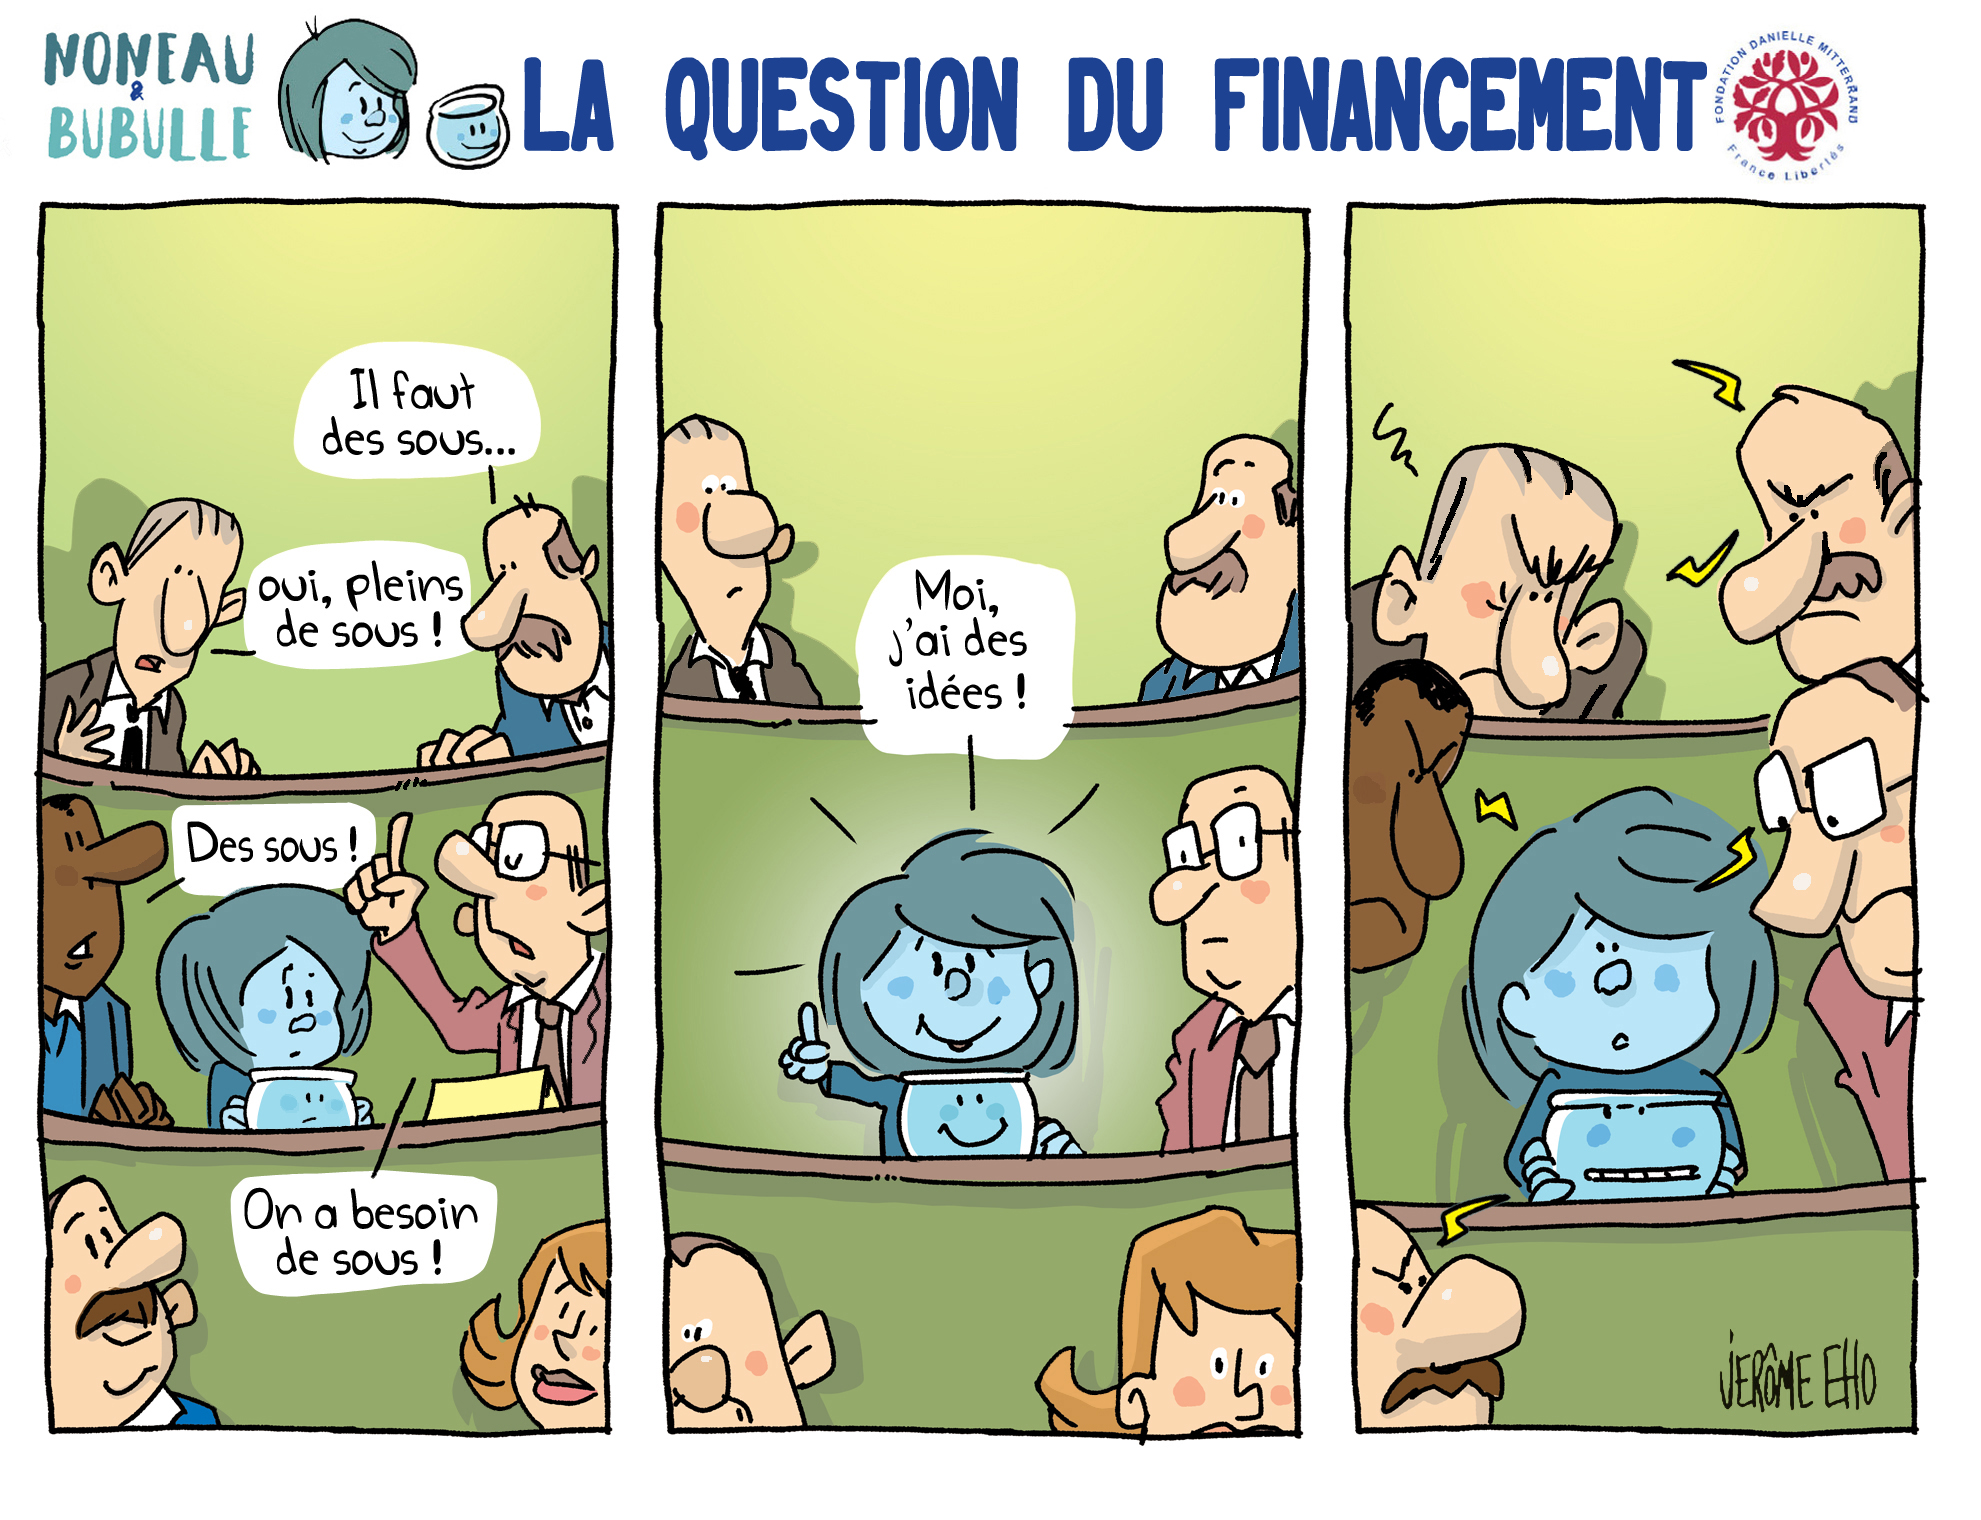 la question du financement - Jérome Eho